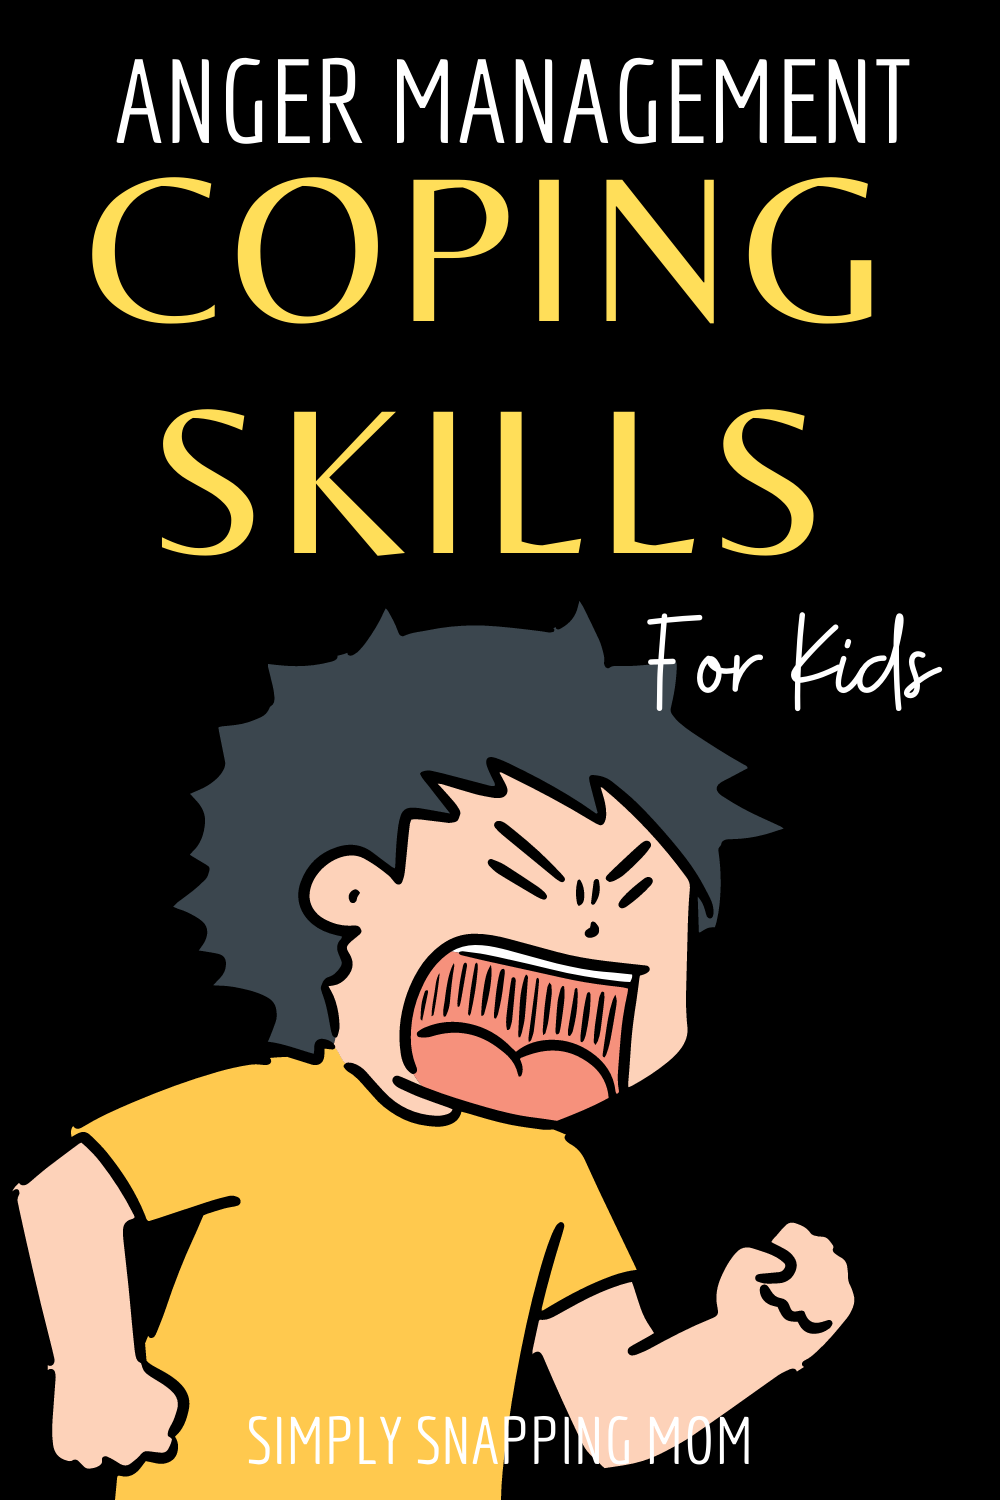 Life Skills for Kids: How to Cope with and Manage Anger